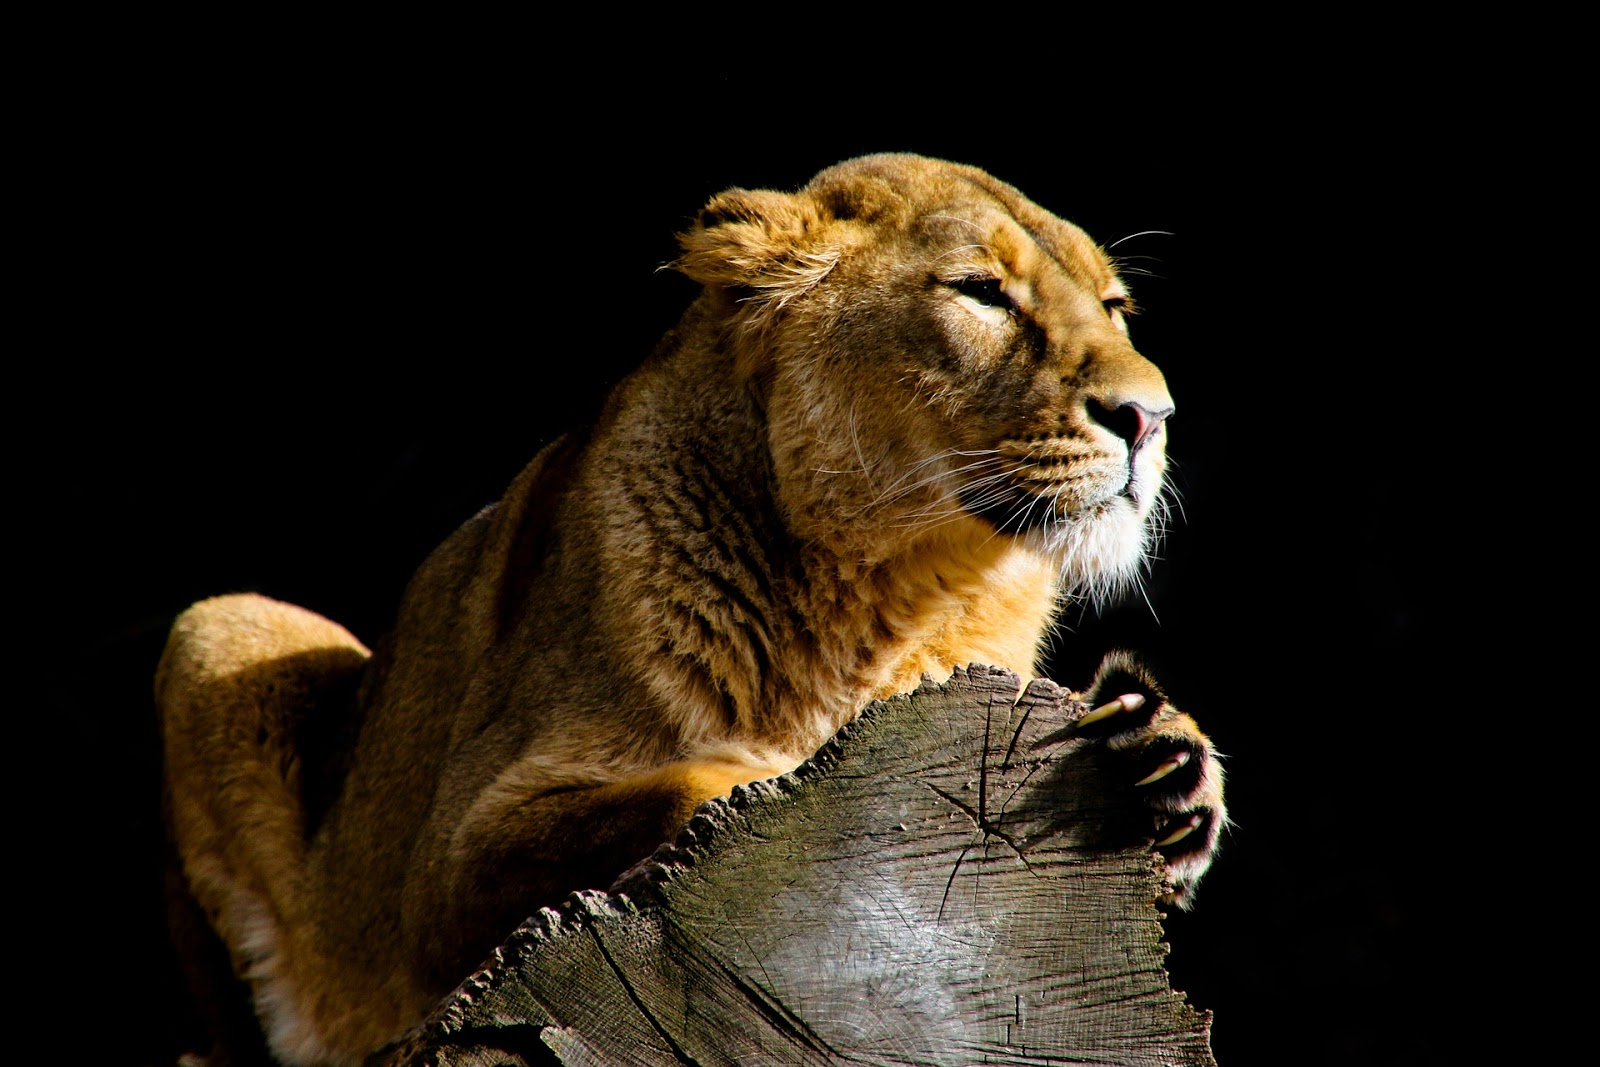 Female Lion in the dark waiting for prey images